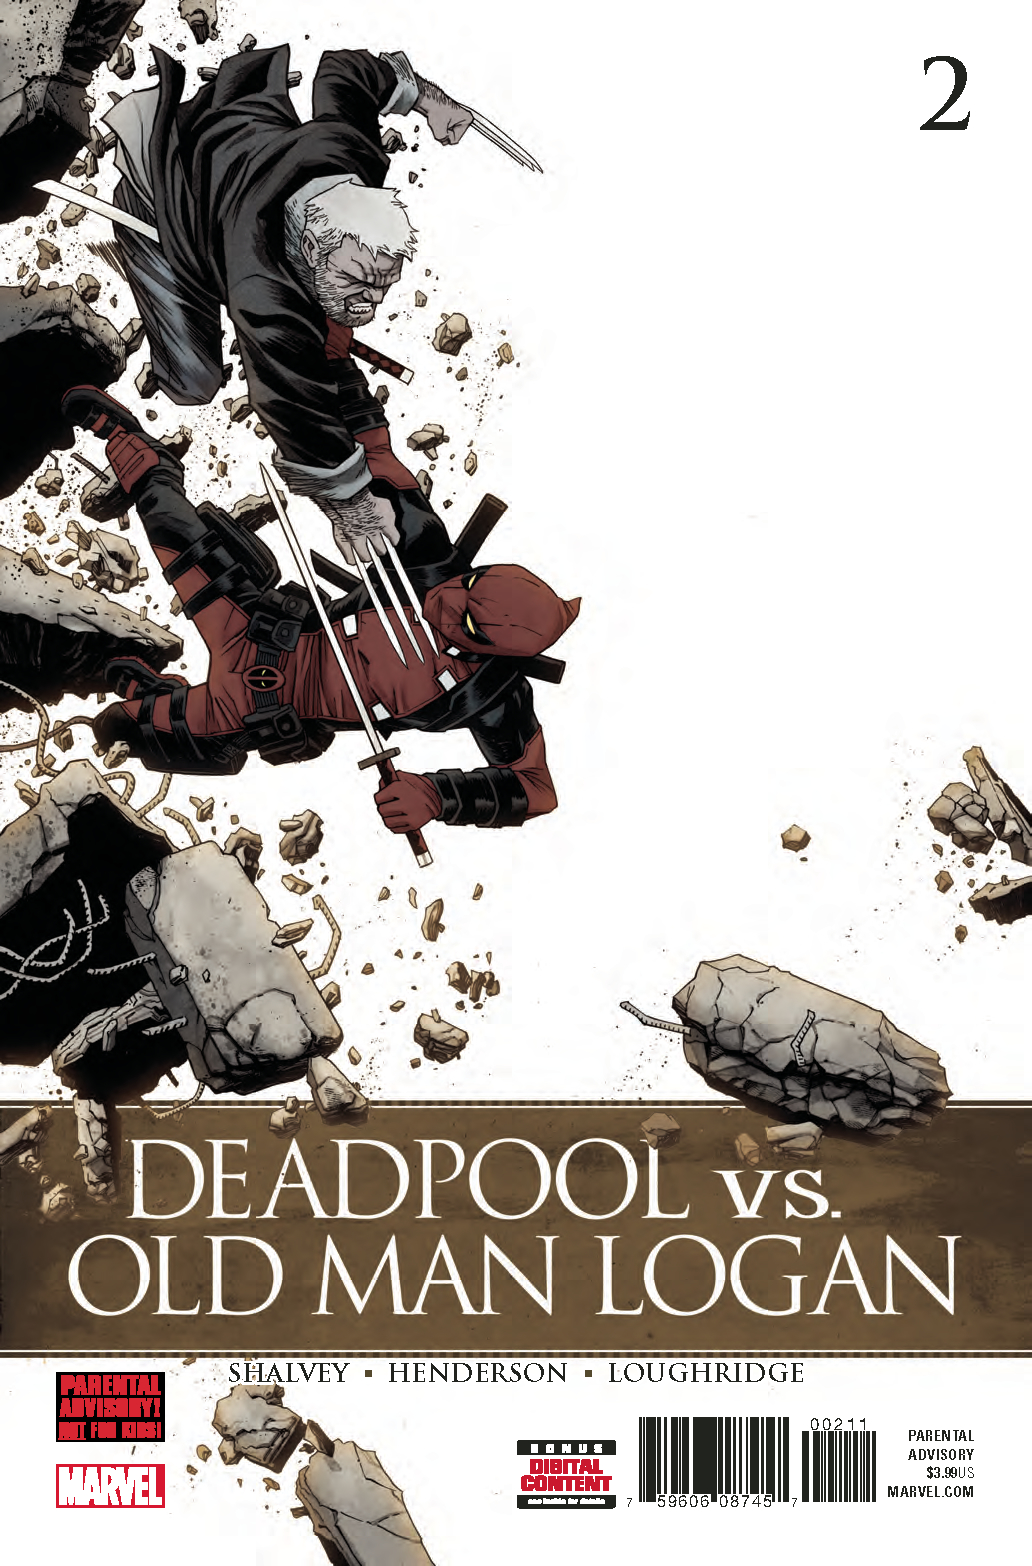 DEADPOOL VS OLD MAN LOGAN #2 (OF 5)